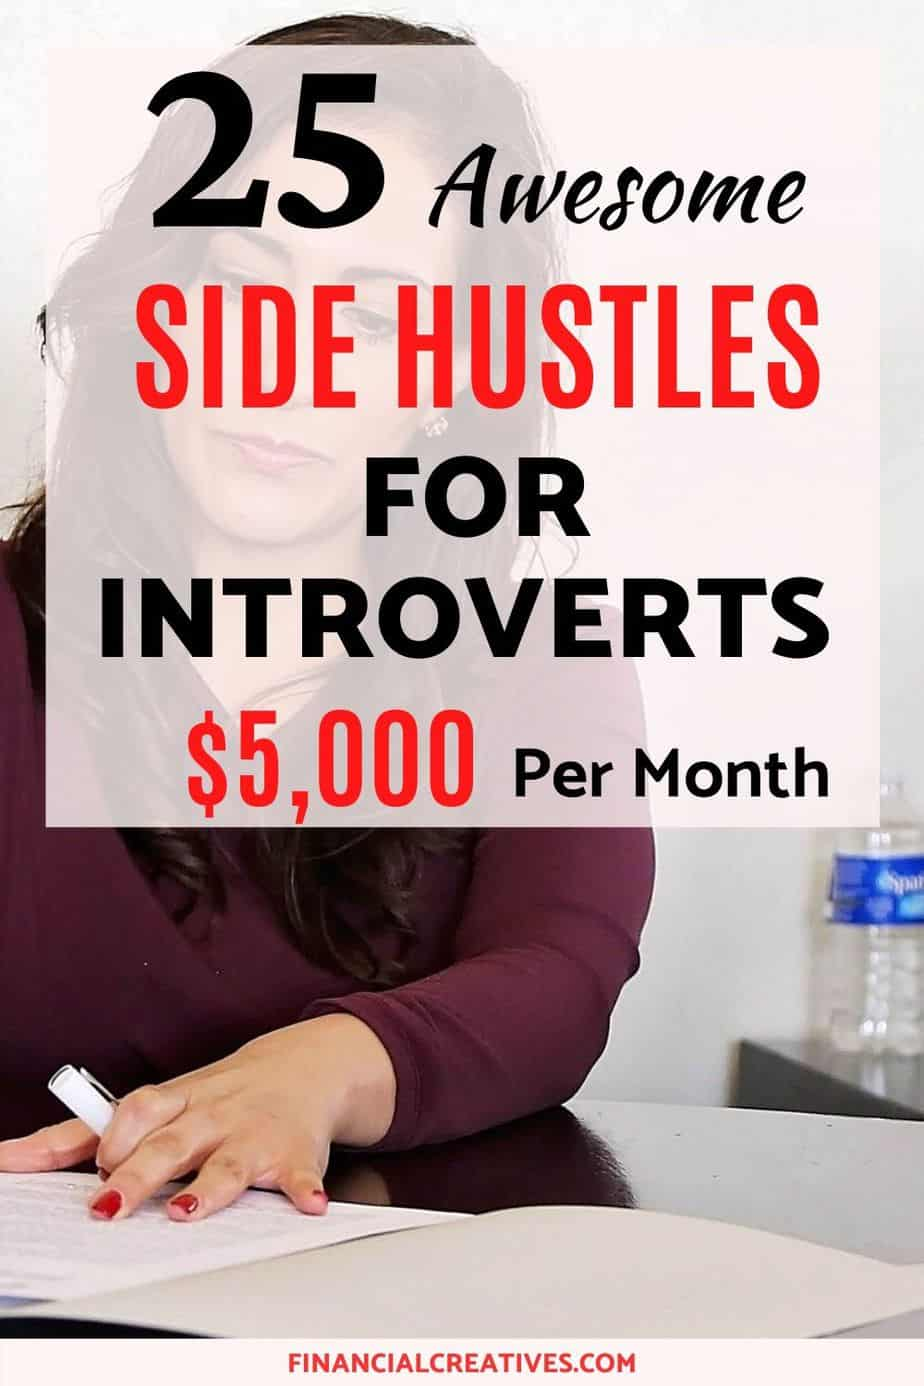 Best Side Hustles For Introverts For Extra Cash